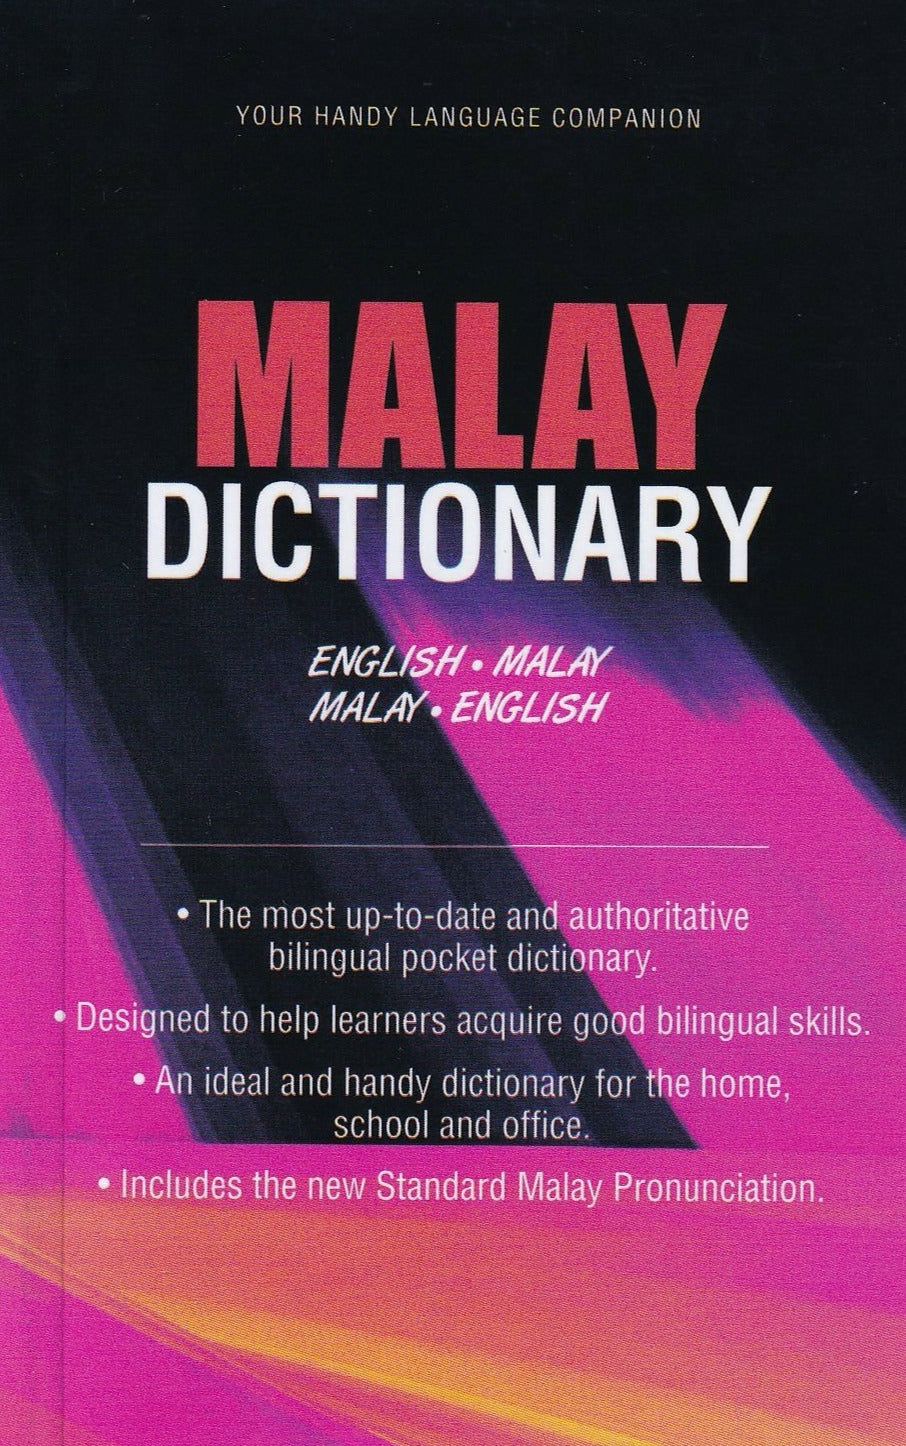 Pocket Malay Dictionary: English-Malay & Malay-English - 9789679782912 - front cover